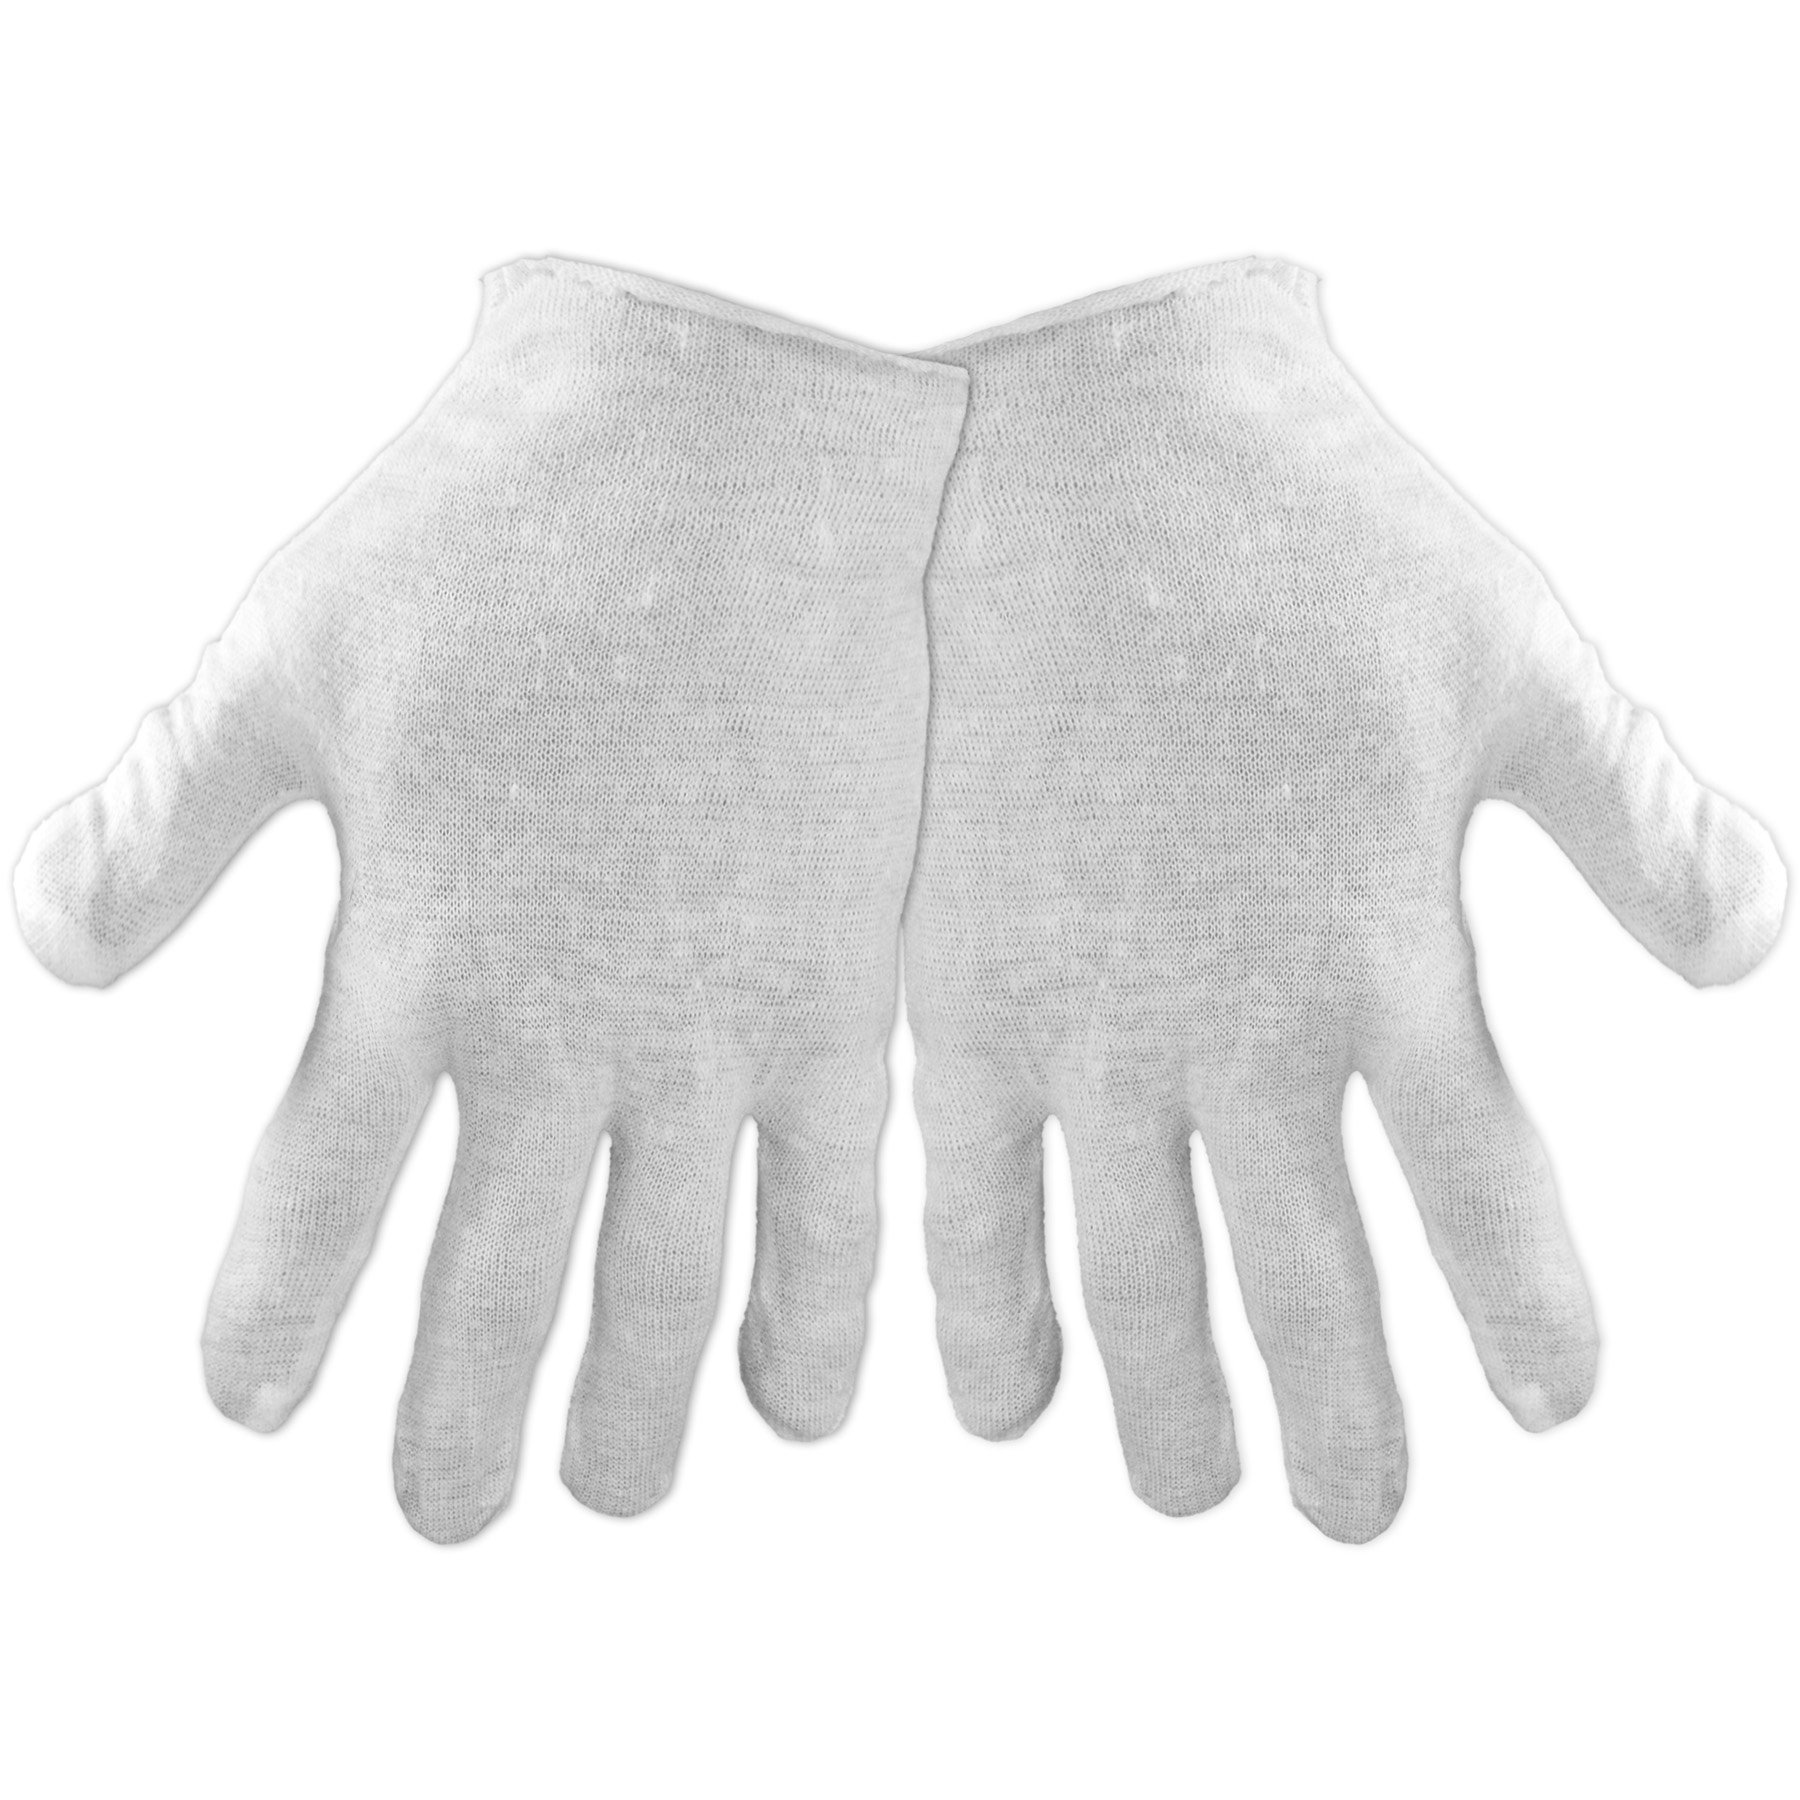 Global Glove L100-W 100 Percent Cotton Bleached Light Weight Lisle Inspectors Glove, Work, Ladies, White (Case of 1200) by Global Glove